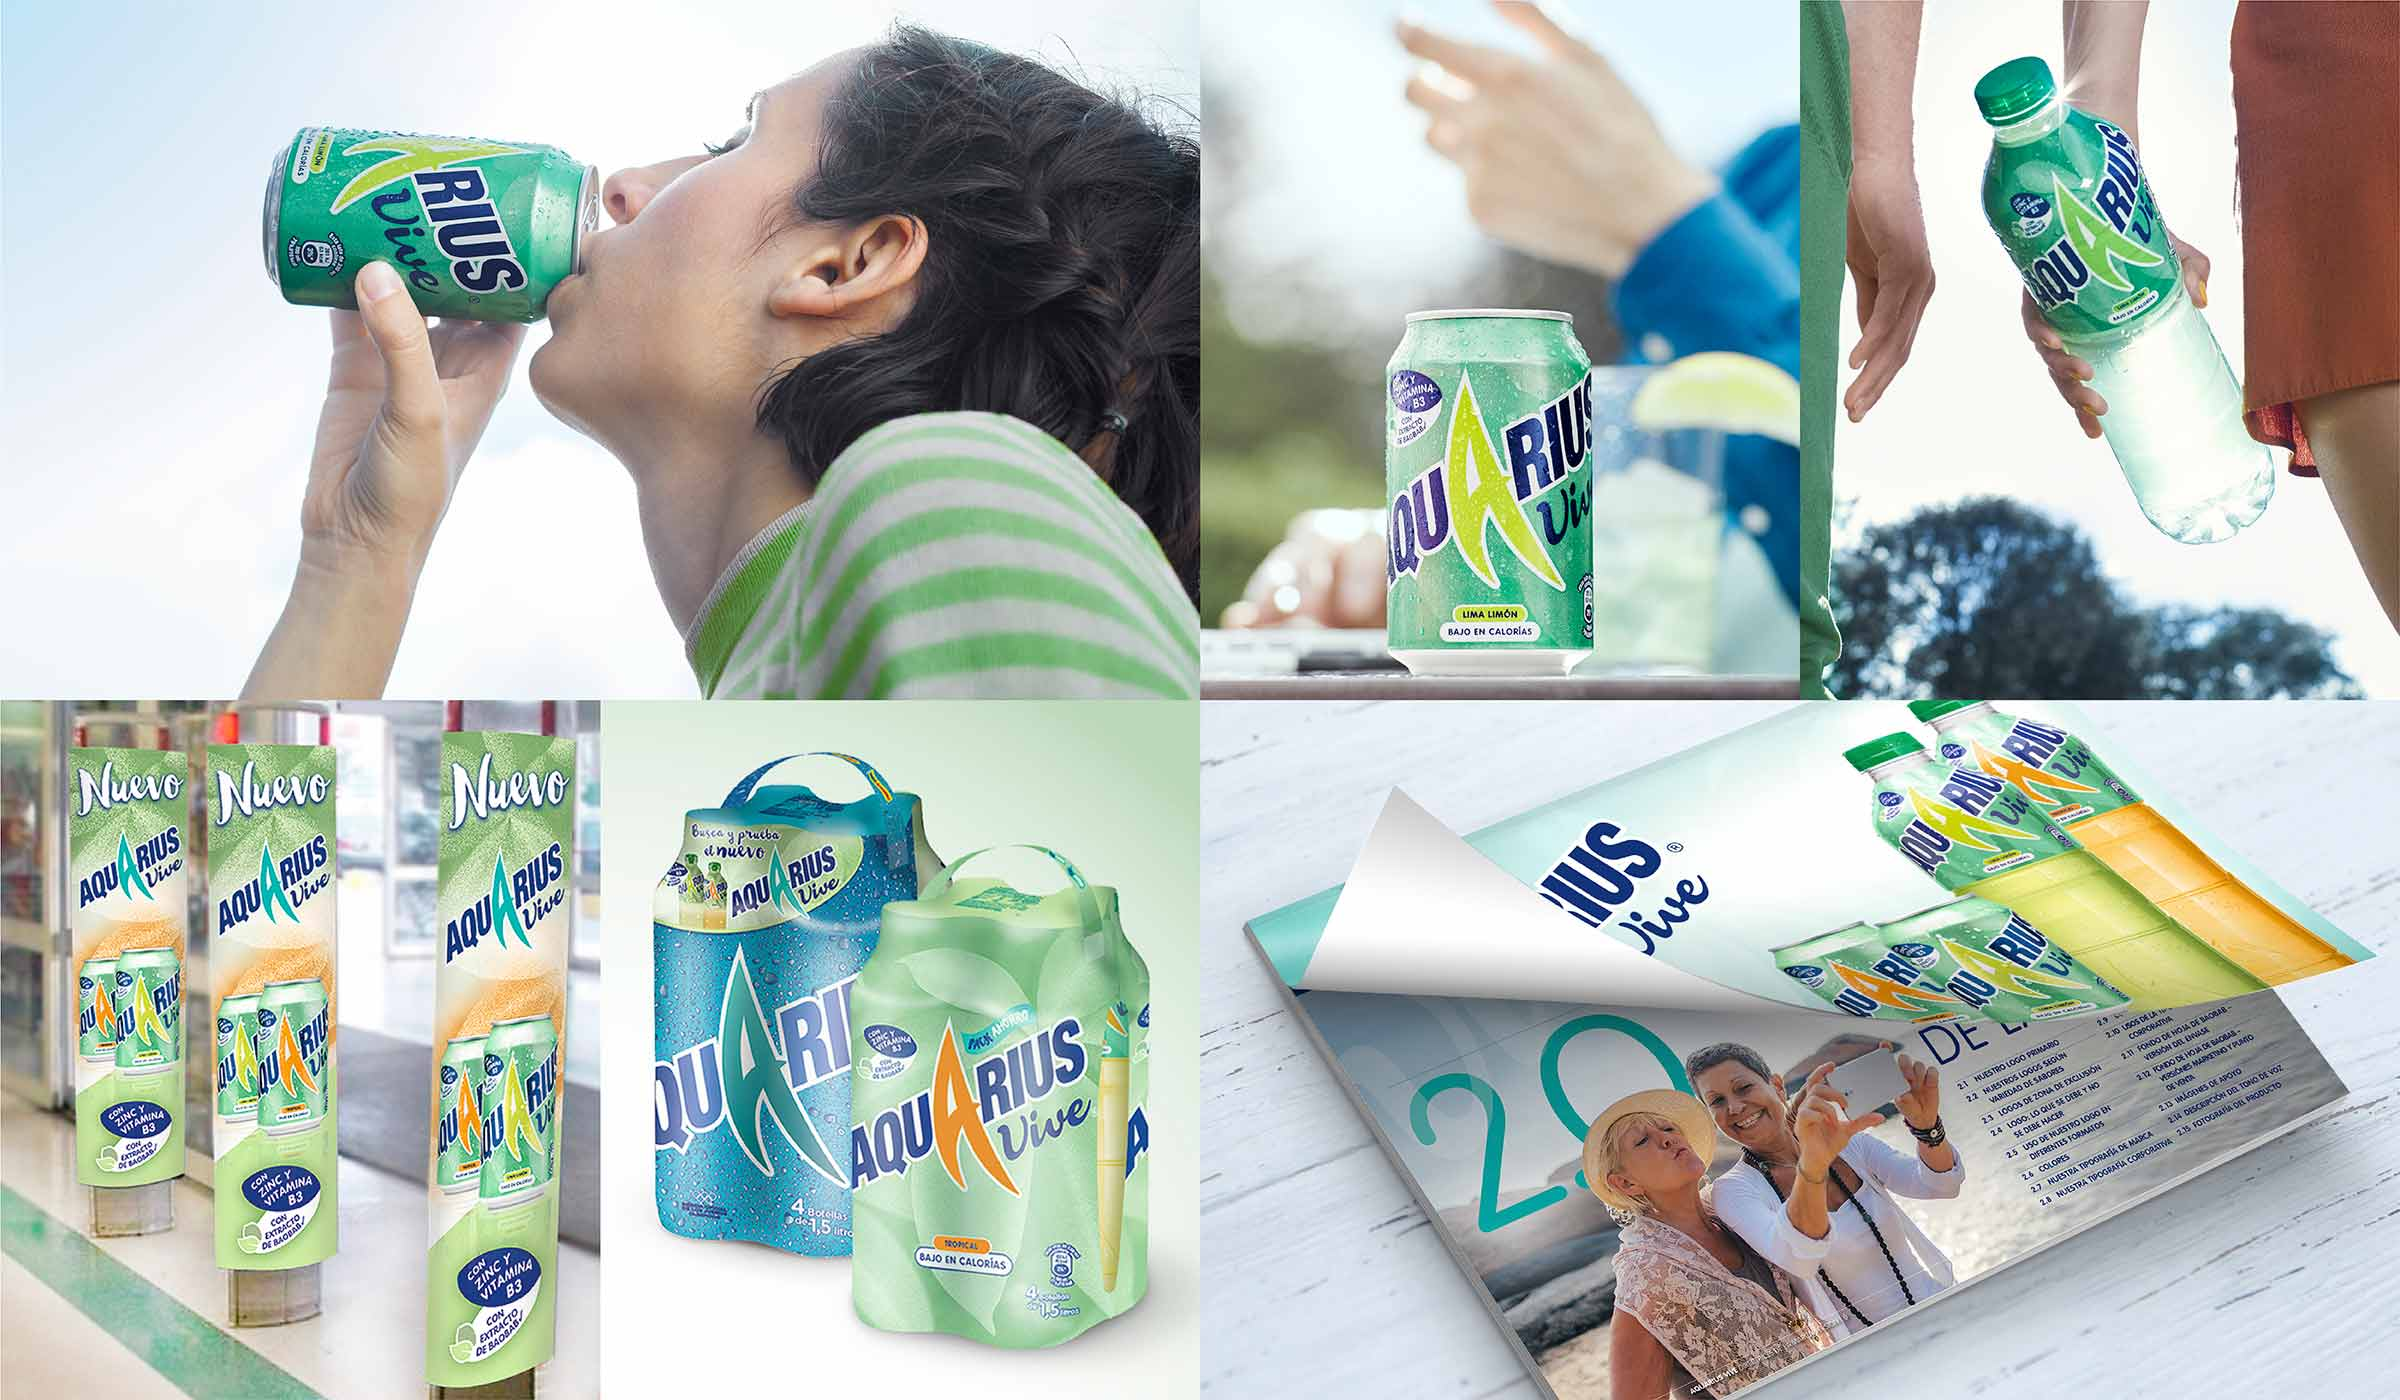 This image is a collage of numerous Aquarius Vive images, including a lady enjoying drinking from a can of Aquarius Vive used for the advertising campaign, as well as images of POS units, supermarket advertising boards designed by P&W as well as Aquarius Vive multipacks and the Aquarius Vive guidelines document that we produced in Spanish.